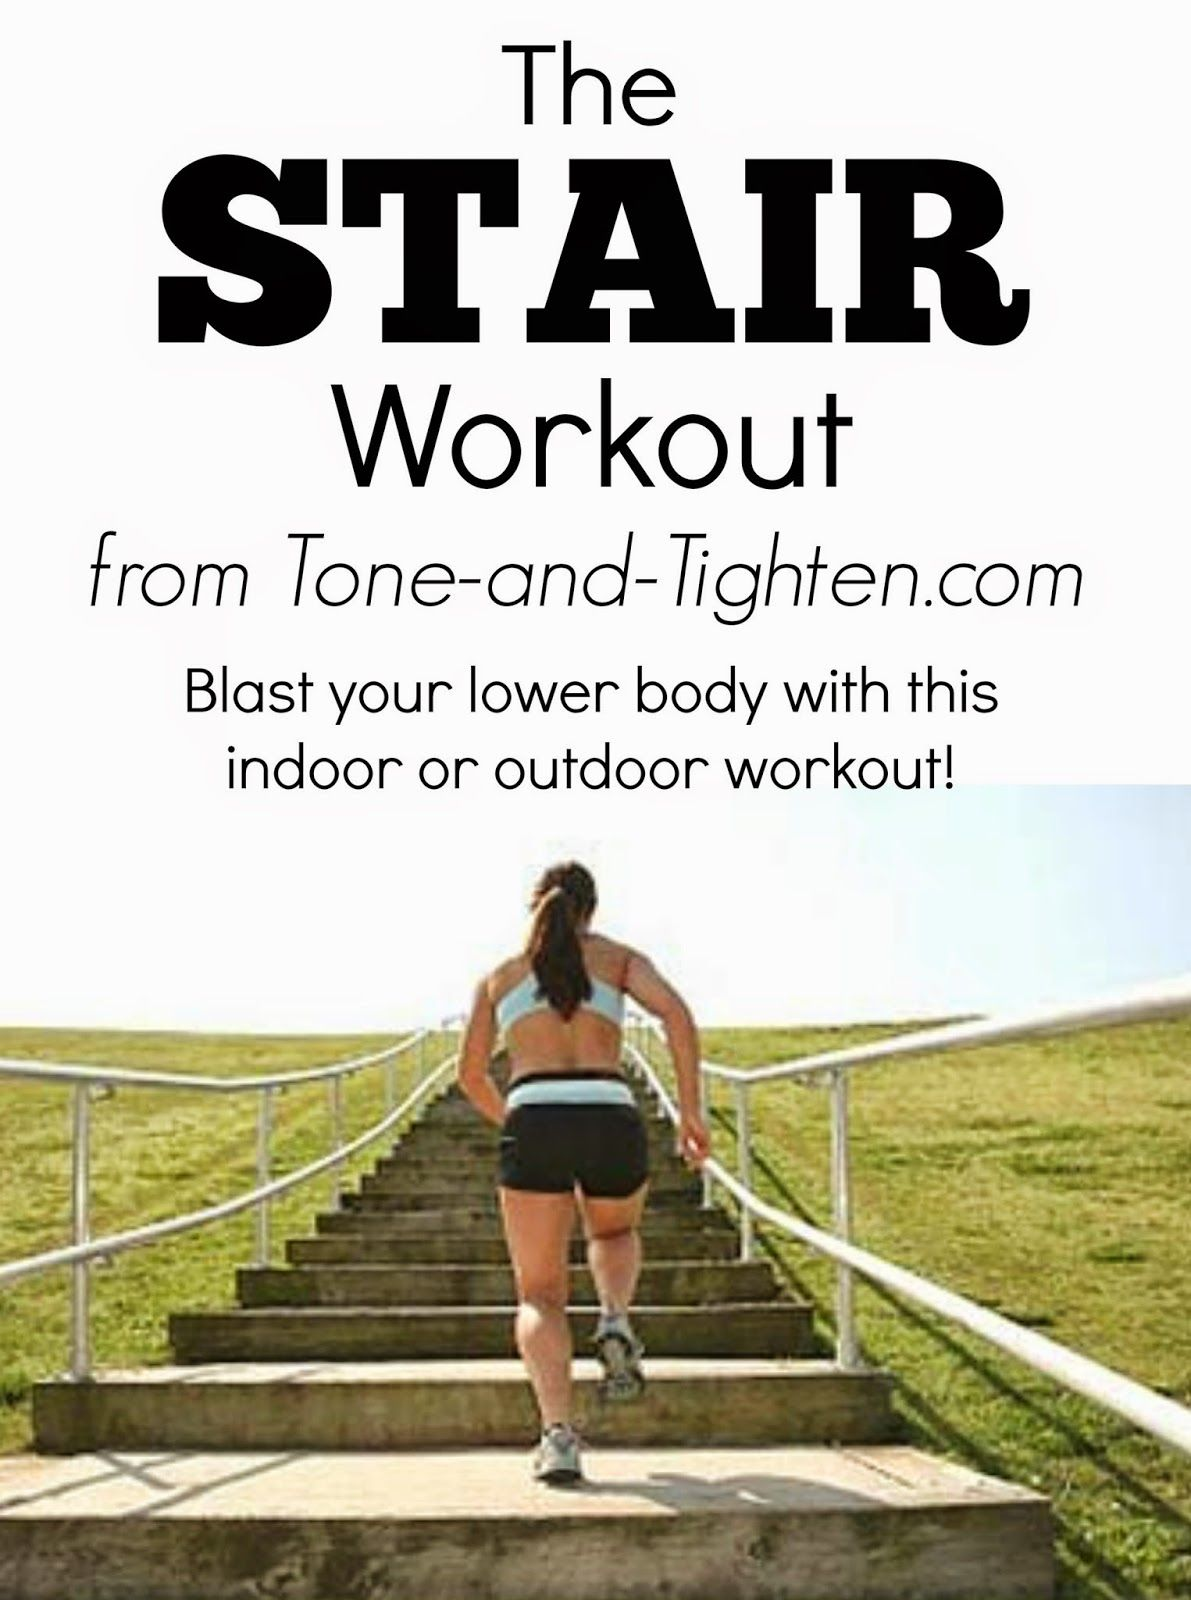 Lighting Basement Washroom Stairs: The Stair Workout- Make Those Legs Burn!